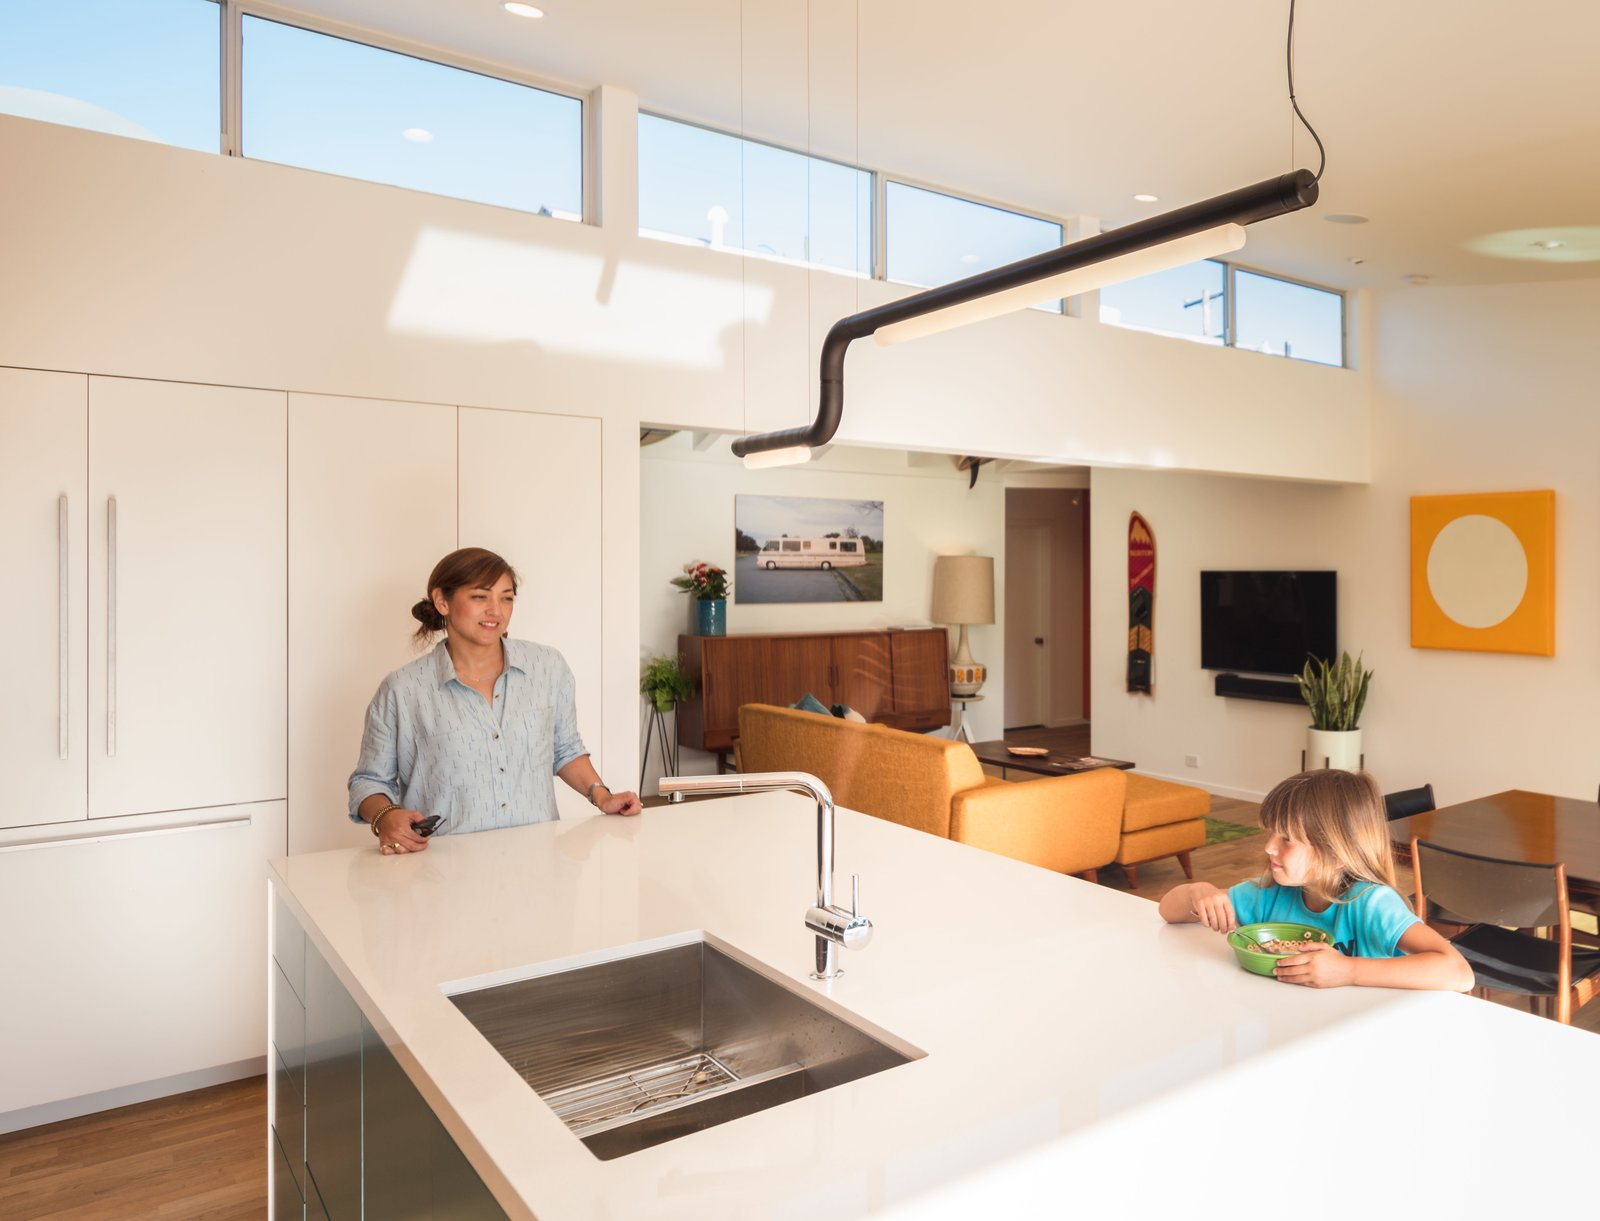 Pipeline LED light by ANDlight in Vancouver + Built-in fridge by Fisher Paykel  The Beach Lab by Surfside Projects